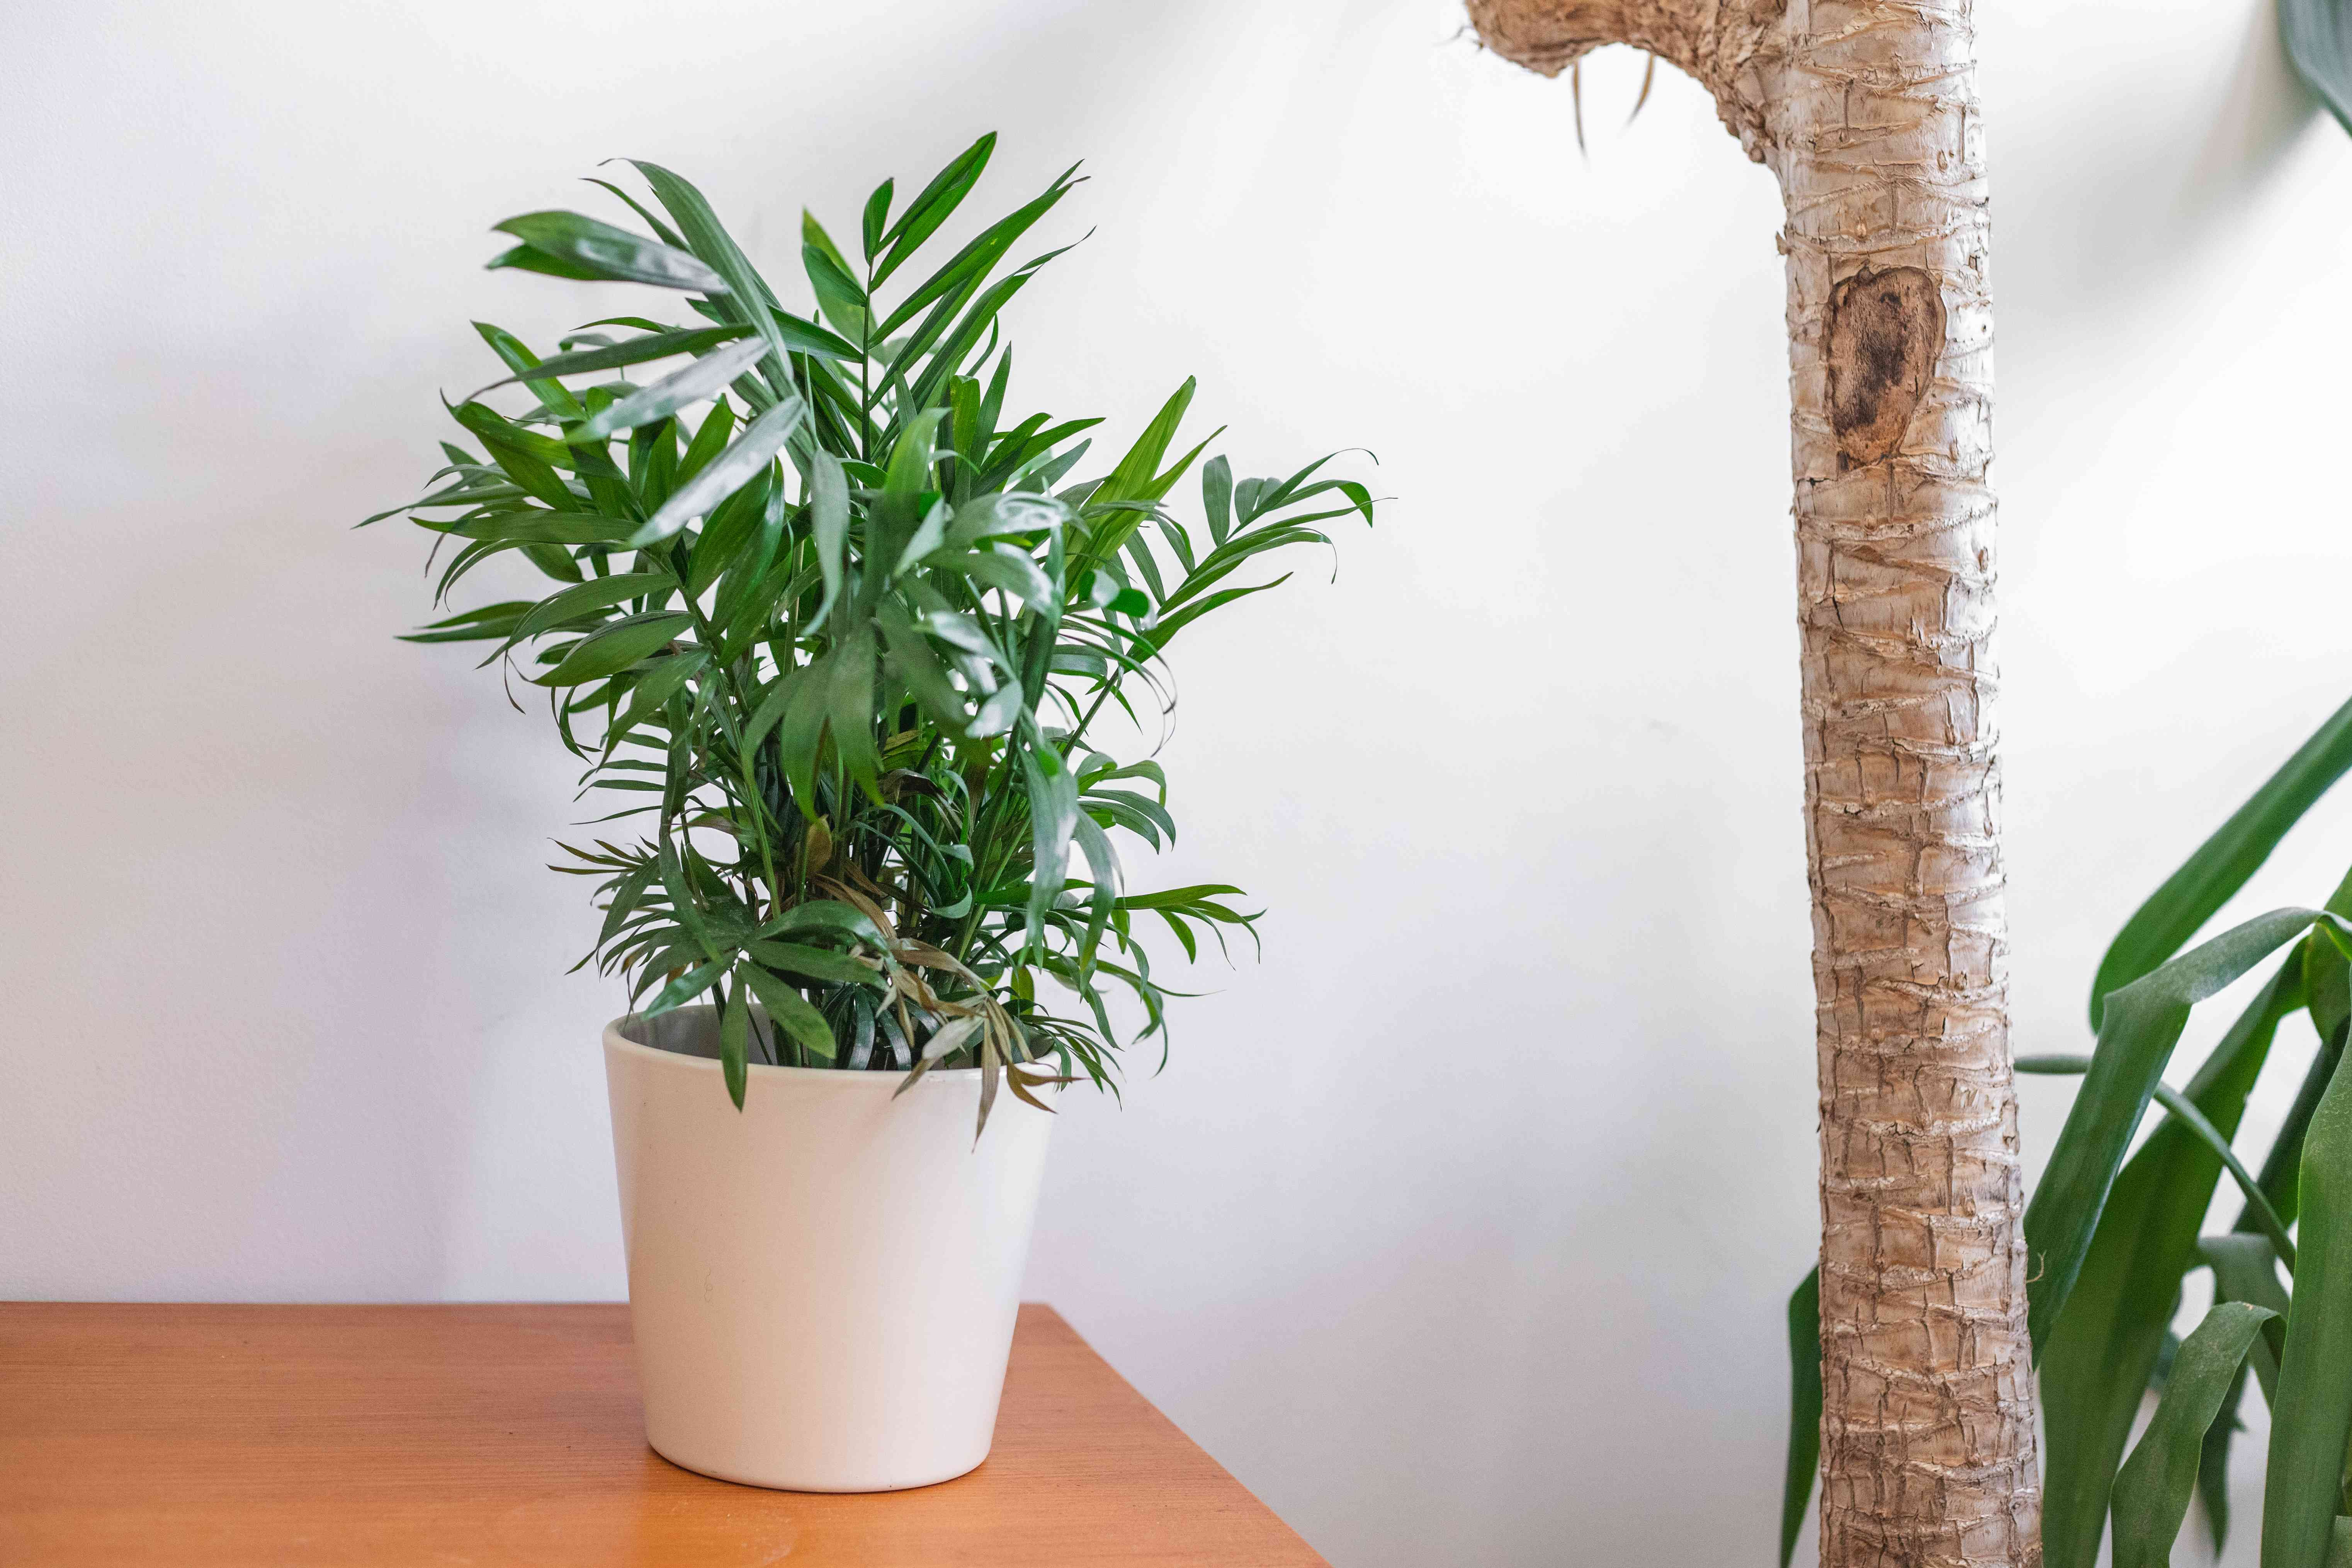 parlor palm house plant in white pot on wooden furniture next to other larger house plants